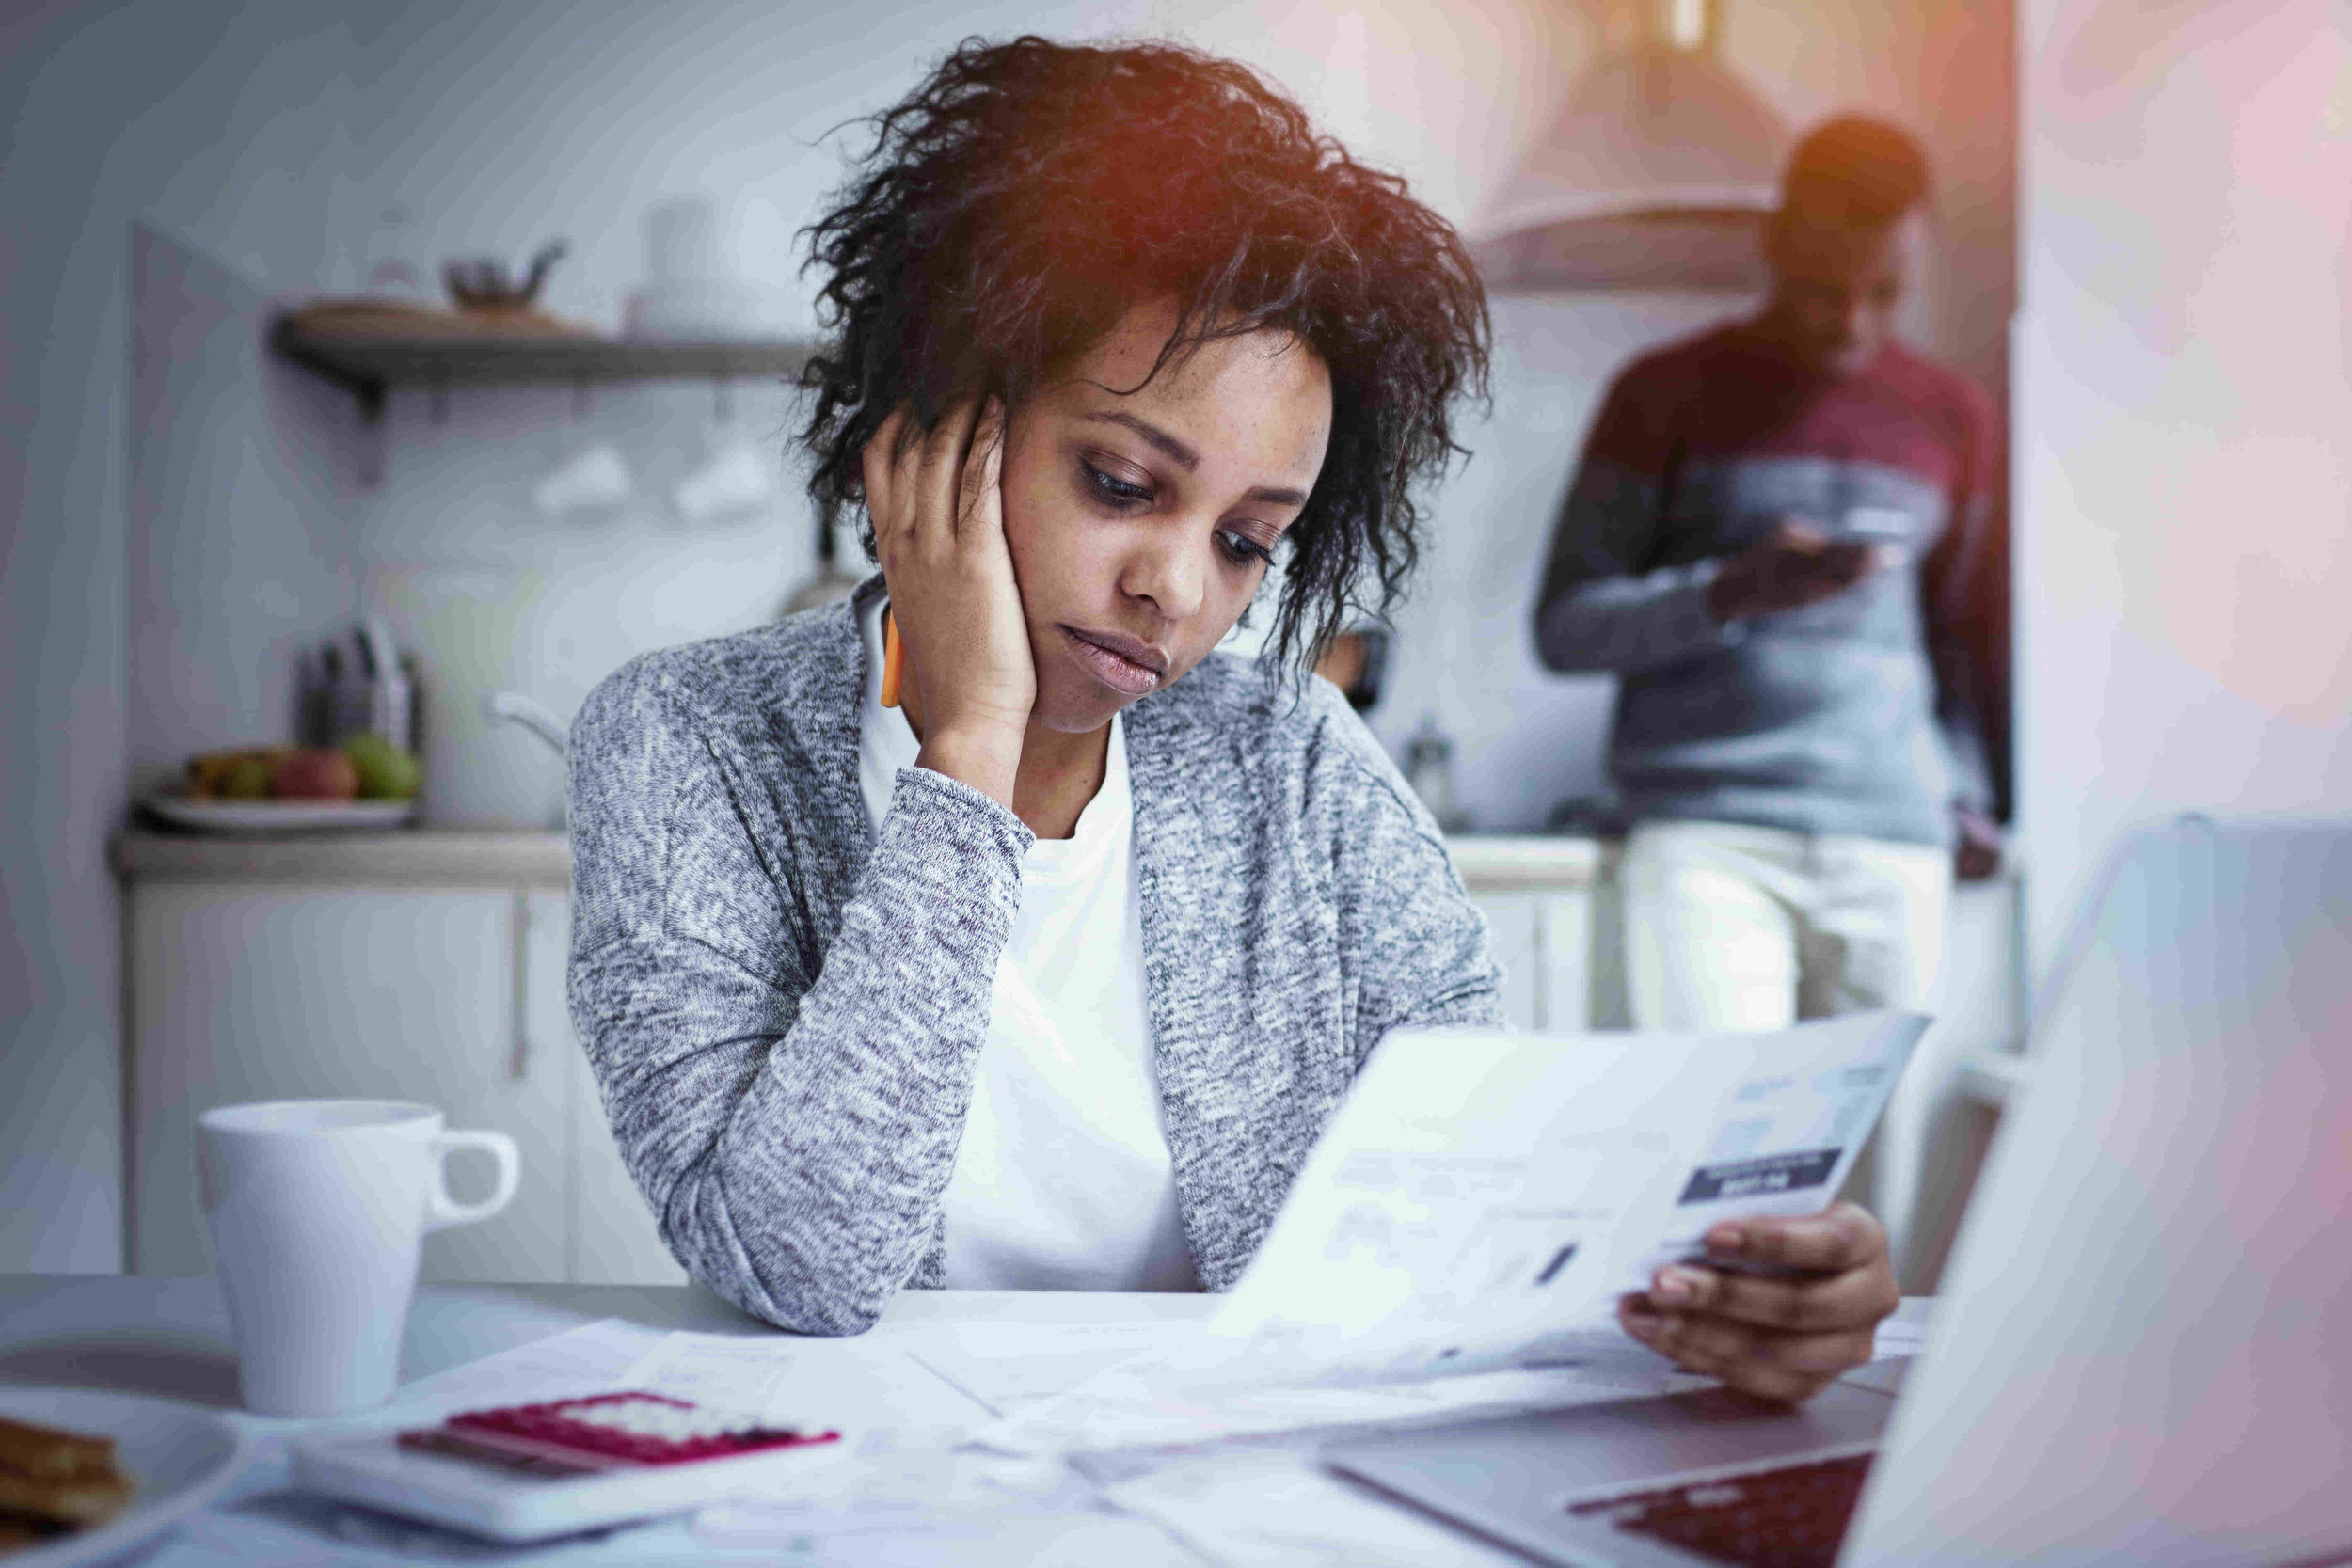 young mother in kitchen staring at documents with son in the background on a cellphone